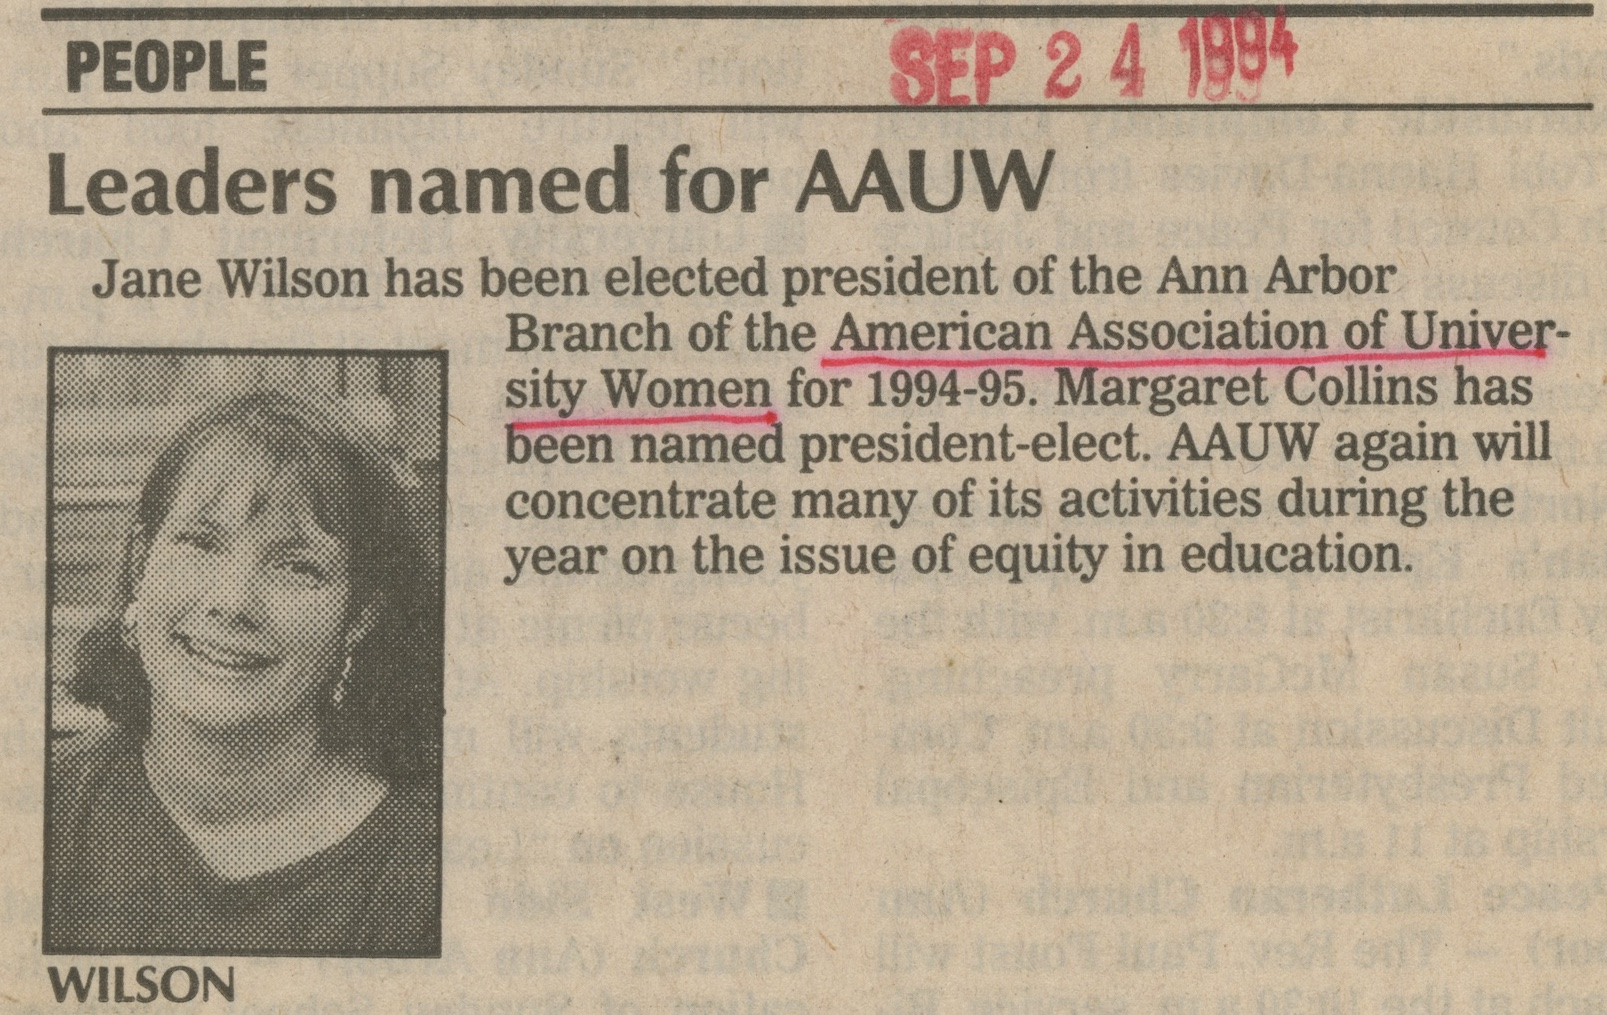 Leaders Named for AAUW image